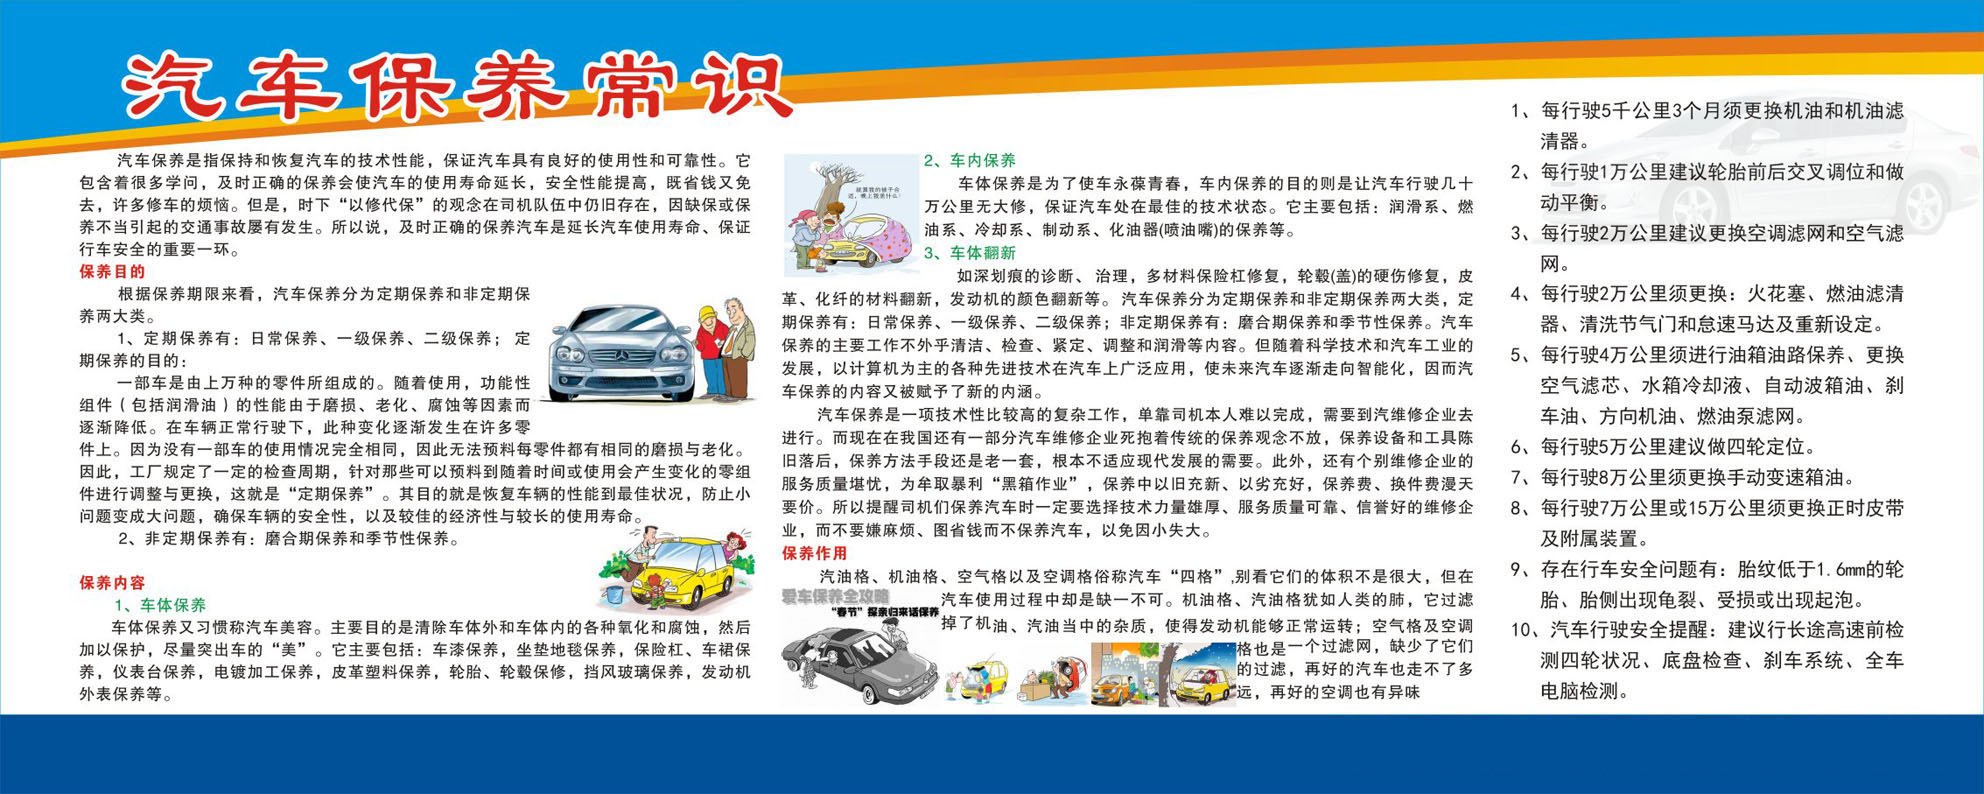 724 posters printed photo 1261 24 riding car driving traffic signs and safe operation of systems and maintenance of common sense